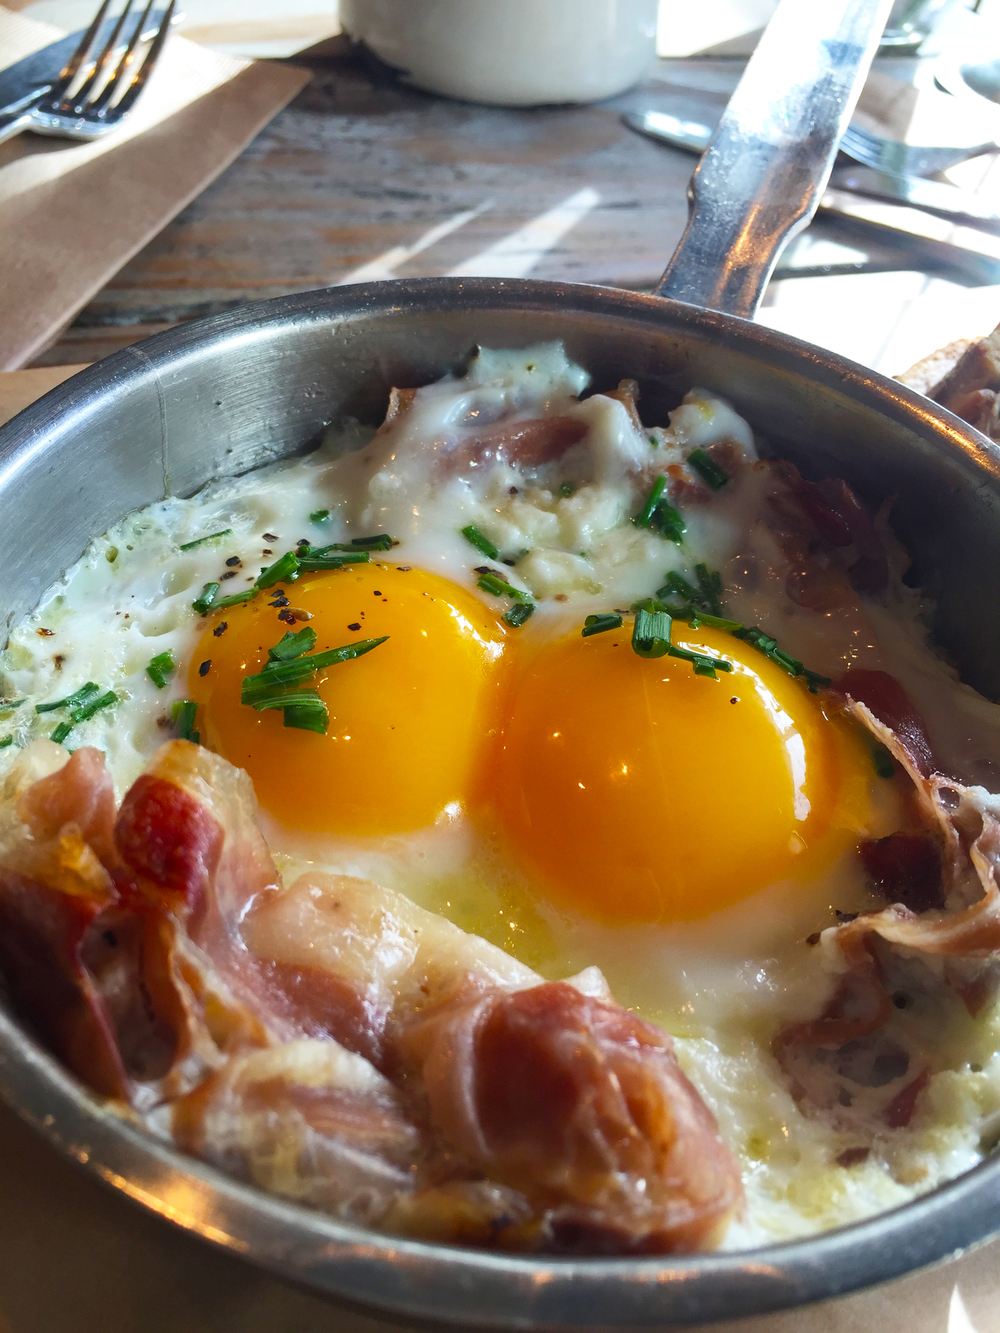 Austrian Speck with Two Sunny Side Eggs in a Pan.